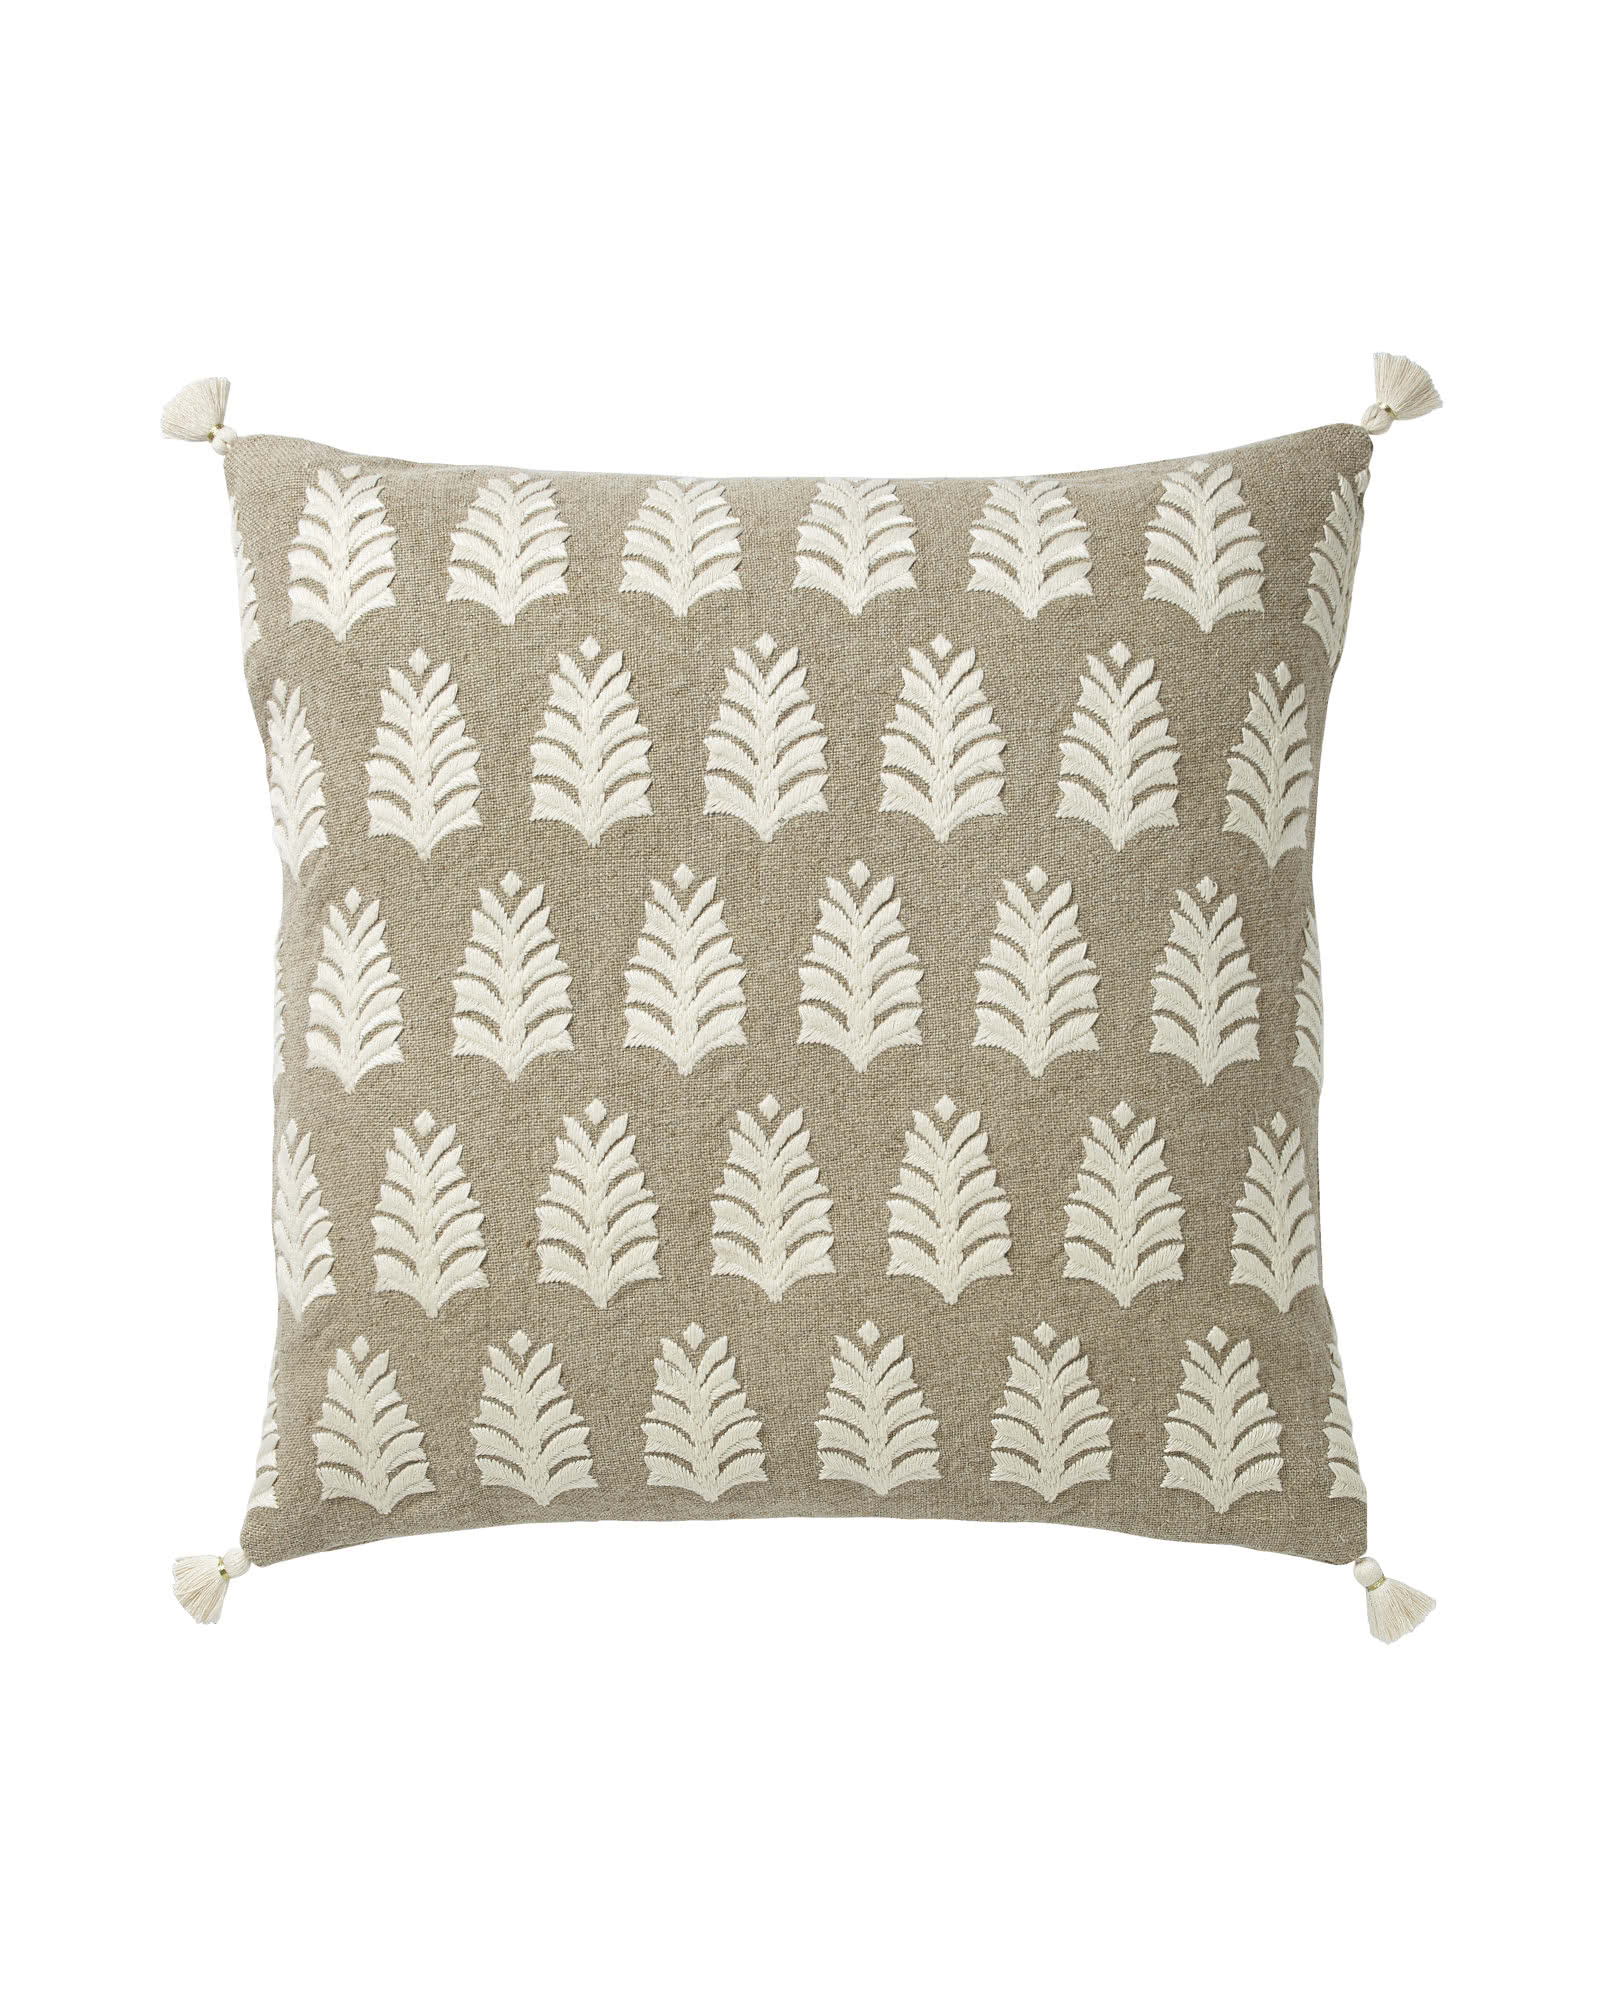 Whitley Embroidered Pillow Cover, Flax